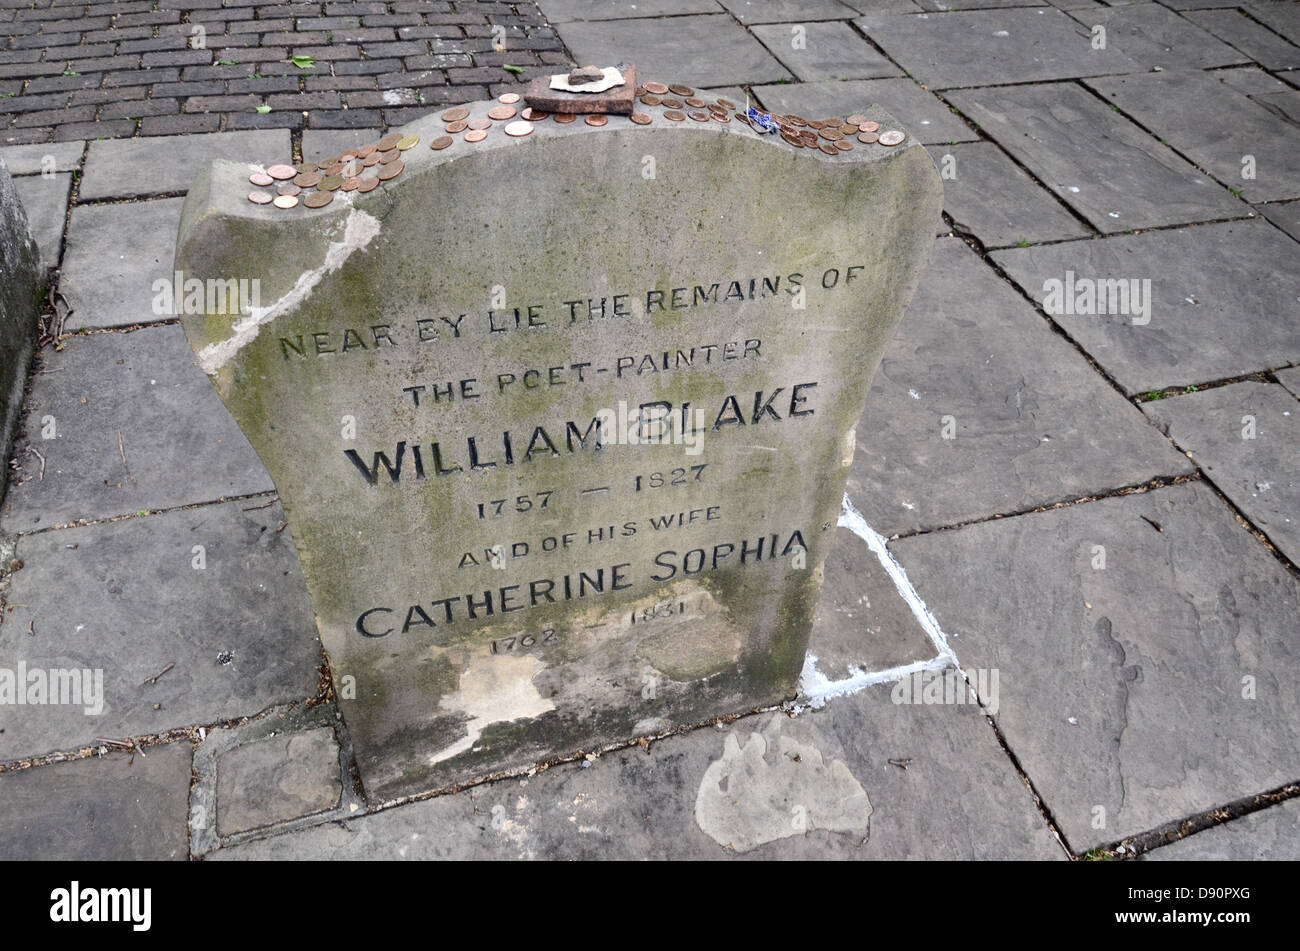 Memorial near the grave of William Blake and his wife in Bunhill Fields Burial Ground, London. - Stock Image